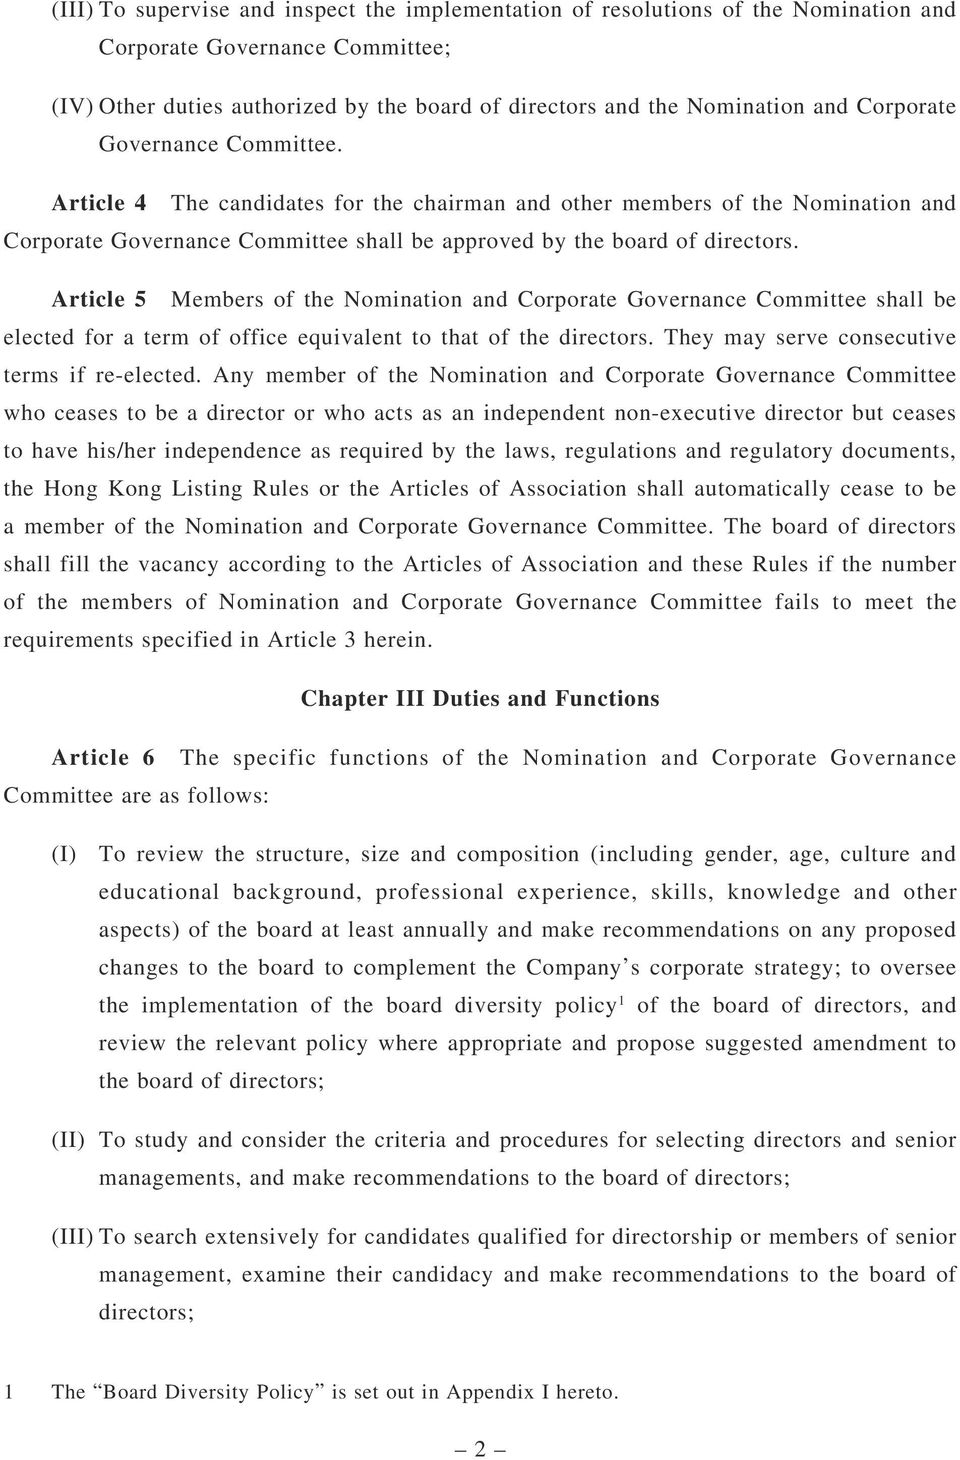 Article 5 Members of the Nomination and Corporate Governance Committee shall be elected for a term of office equivalent to that of the directors. They may serve consecutive terms if re-elected.